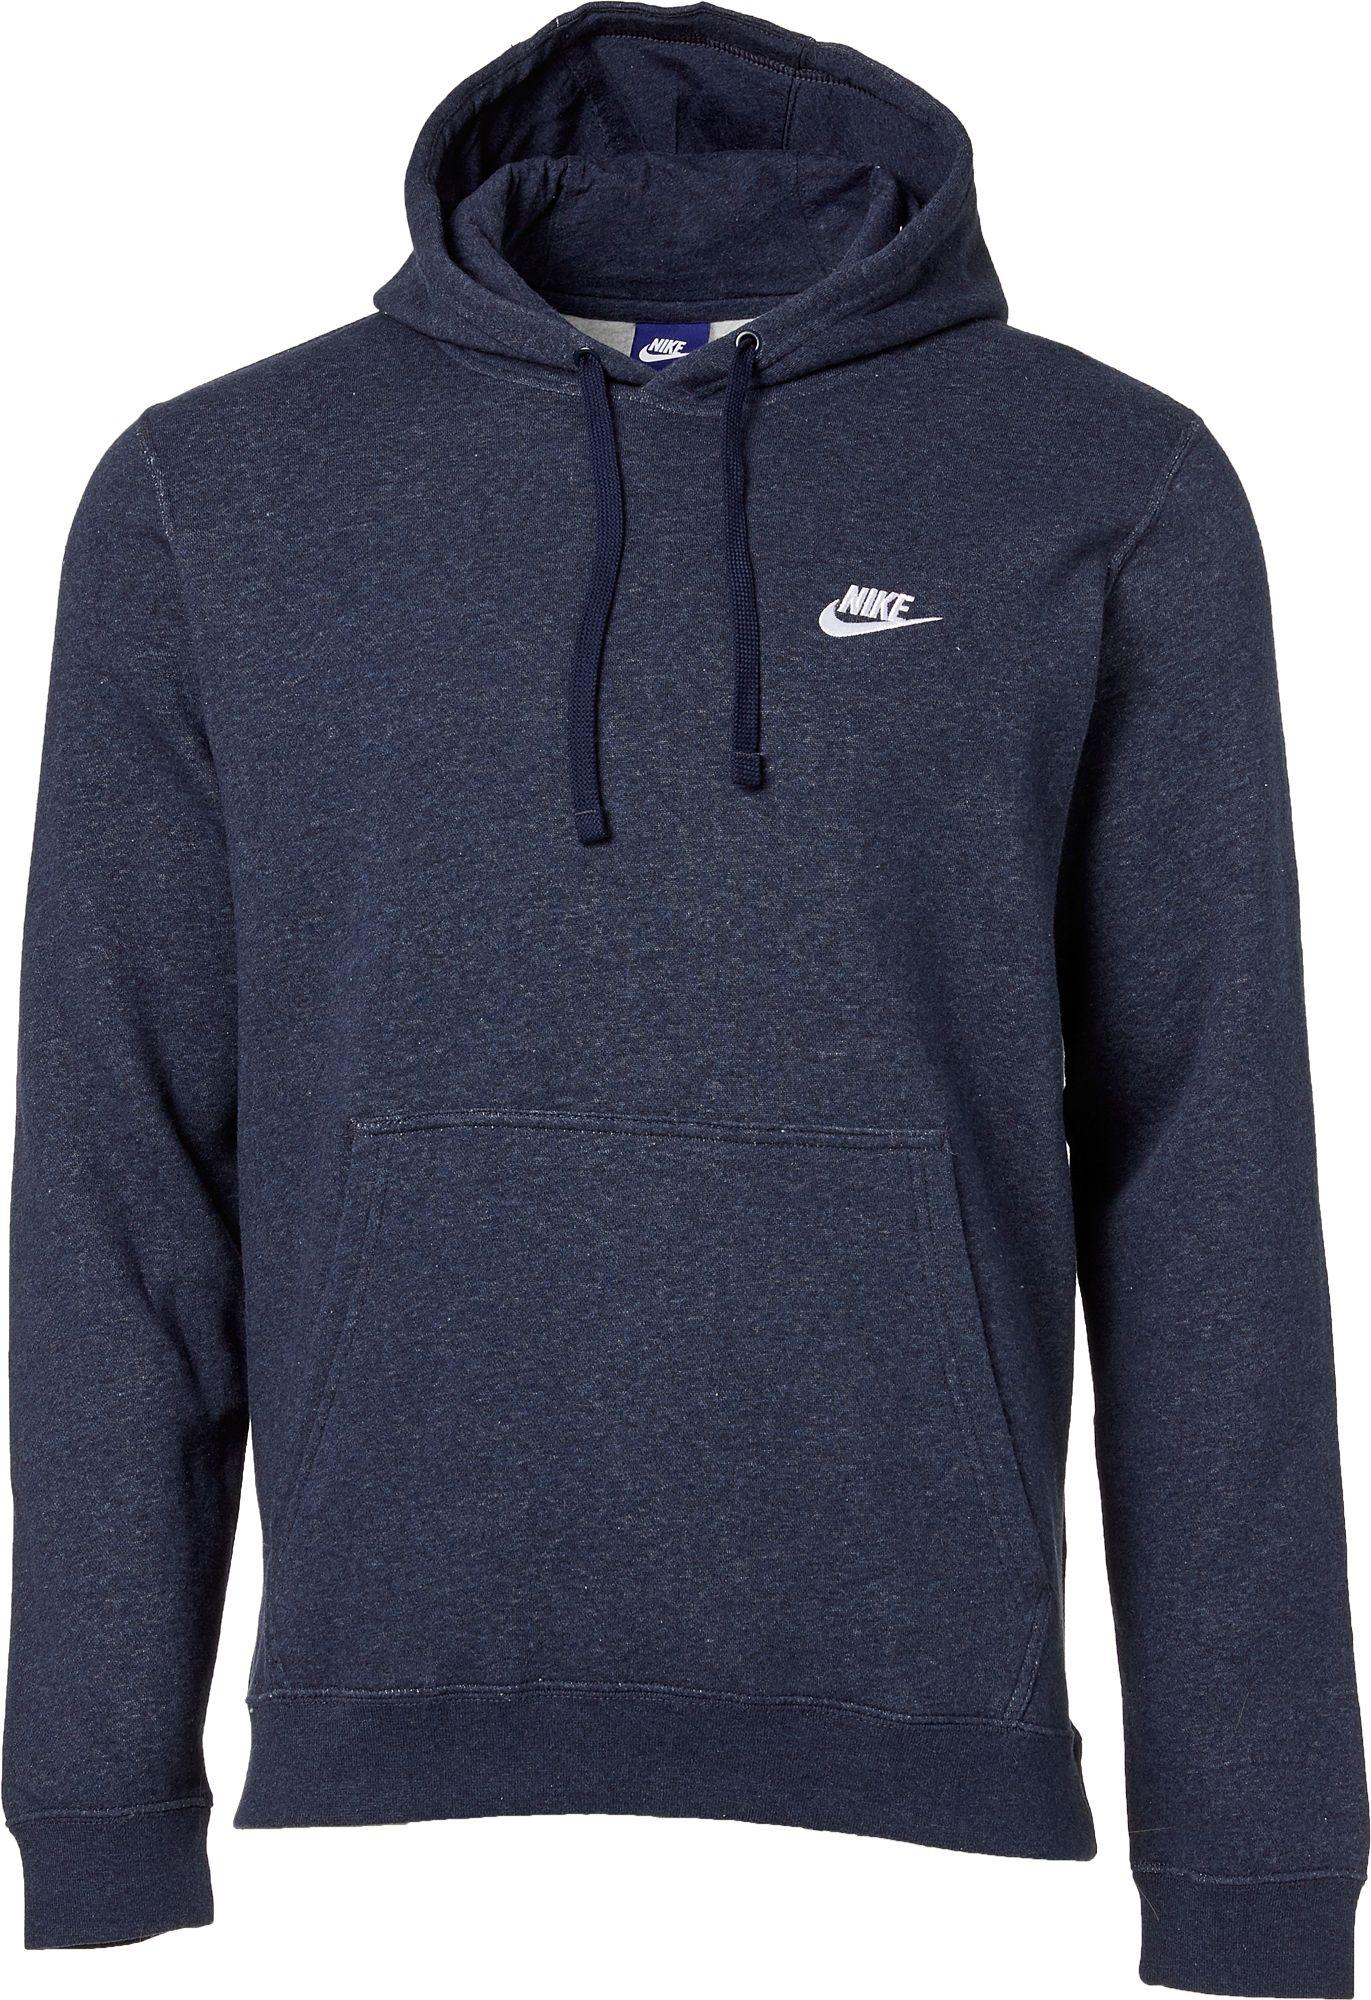 569460b2c7c3 Lyst - Nike Club Fleece Pullover Hoodie in Blue for Men